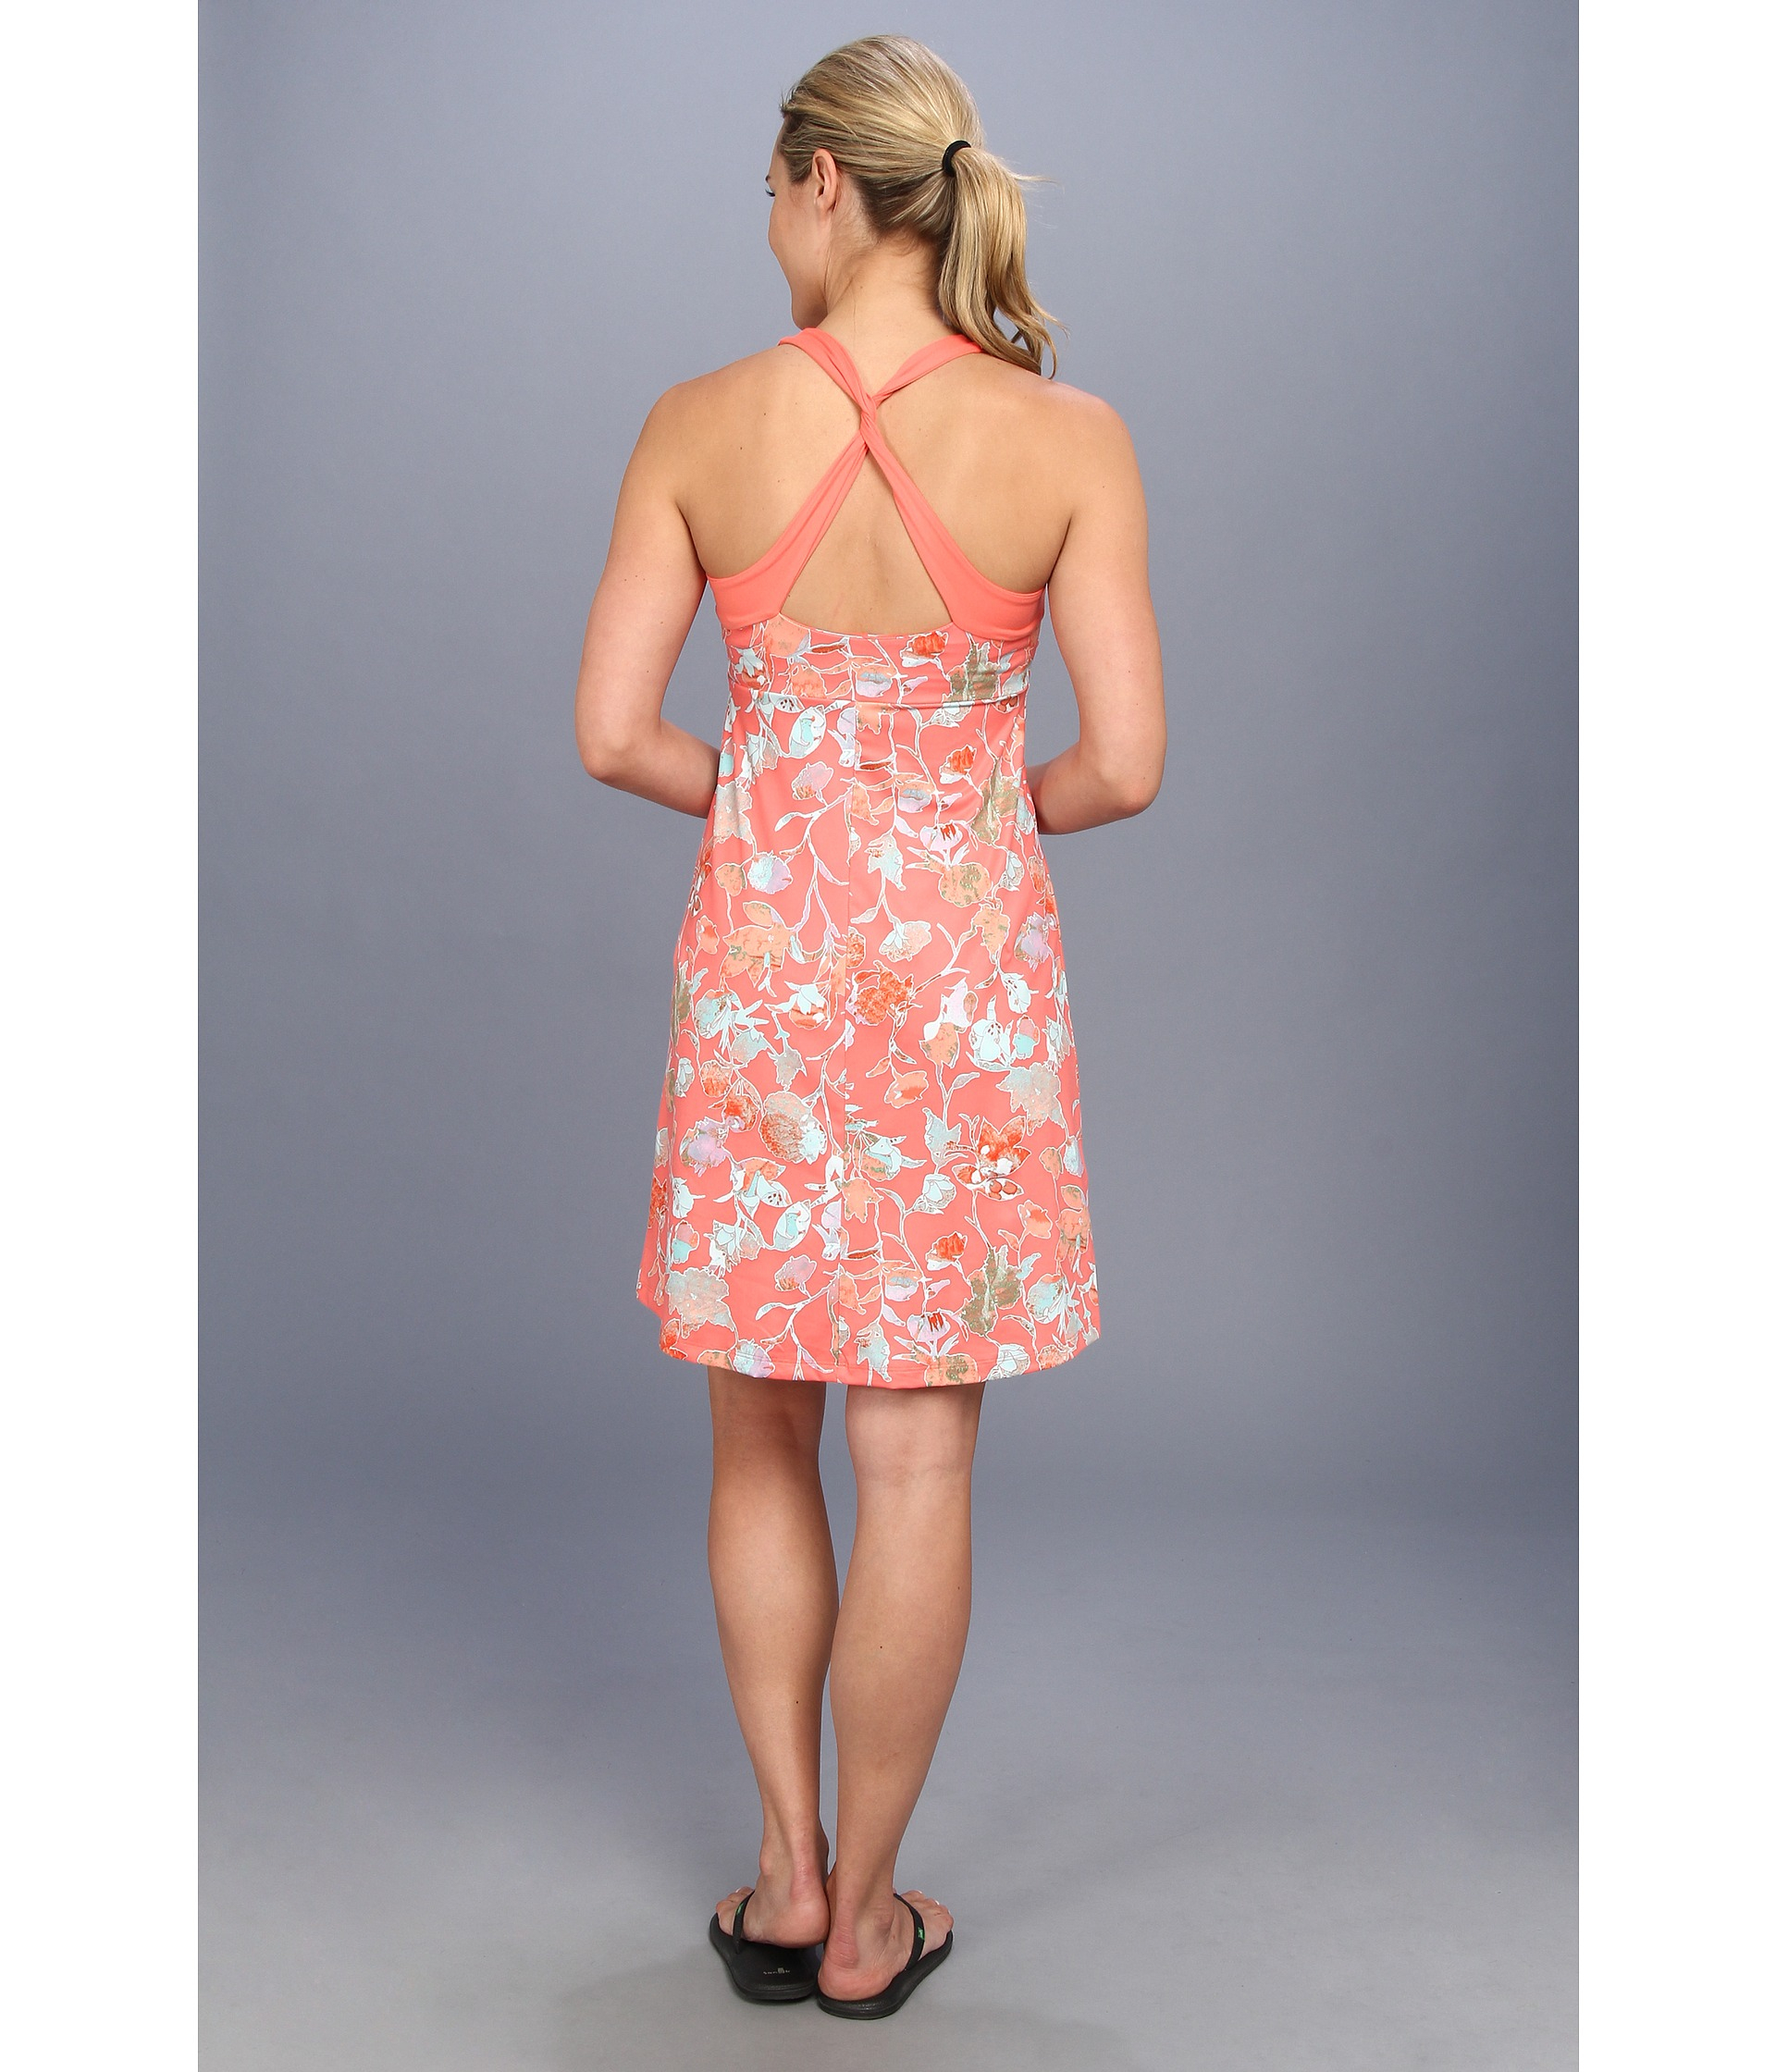 19c5c68a1ec Patagonia Morning Glory Dress in Pink - Lyst